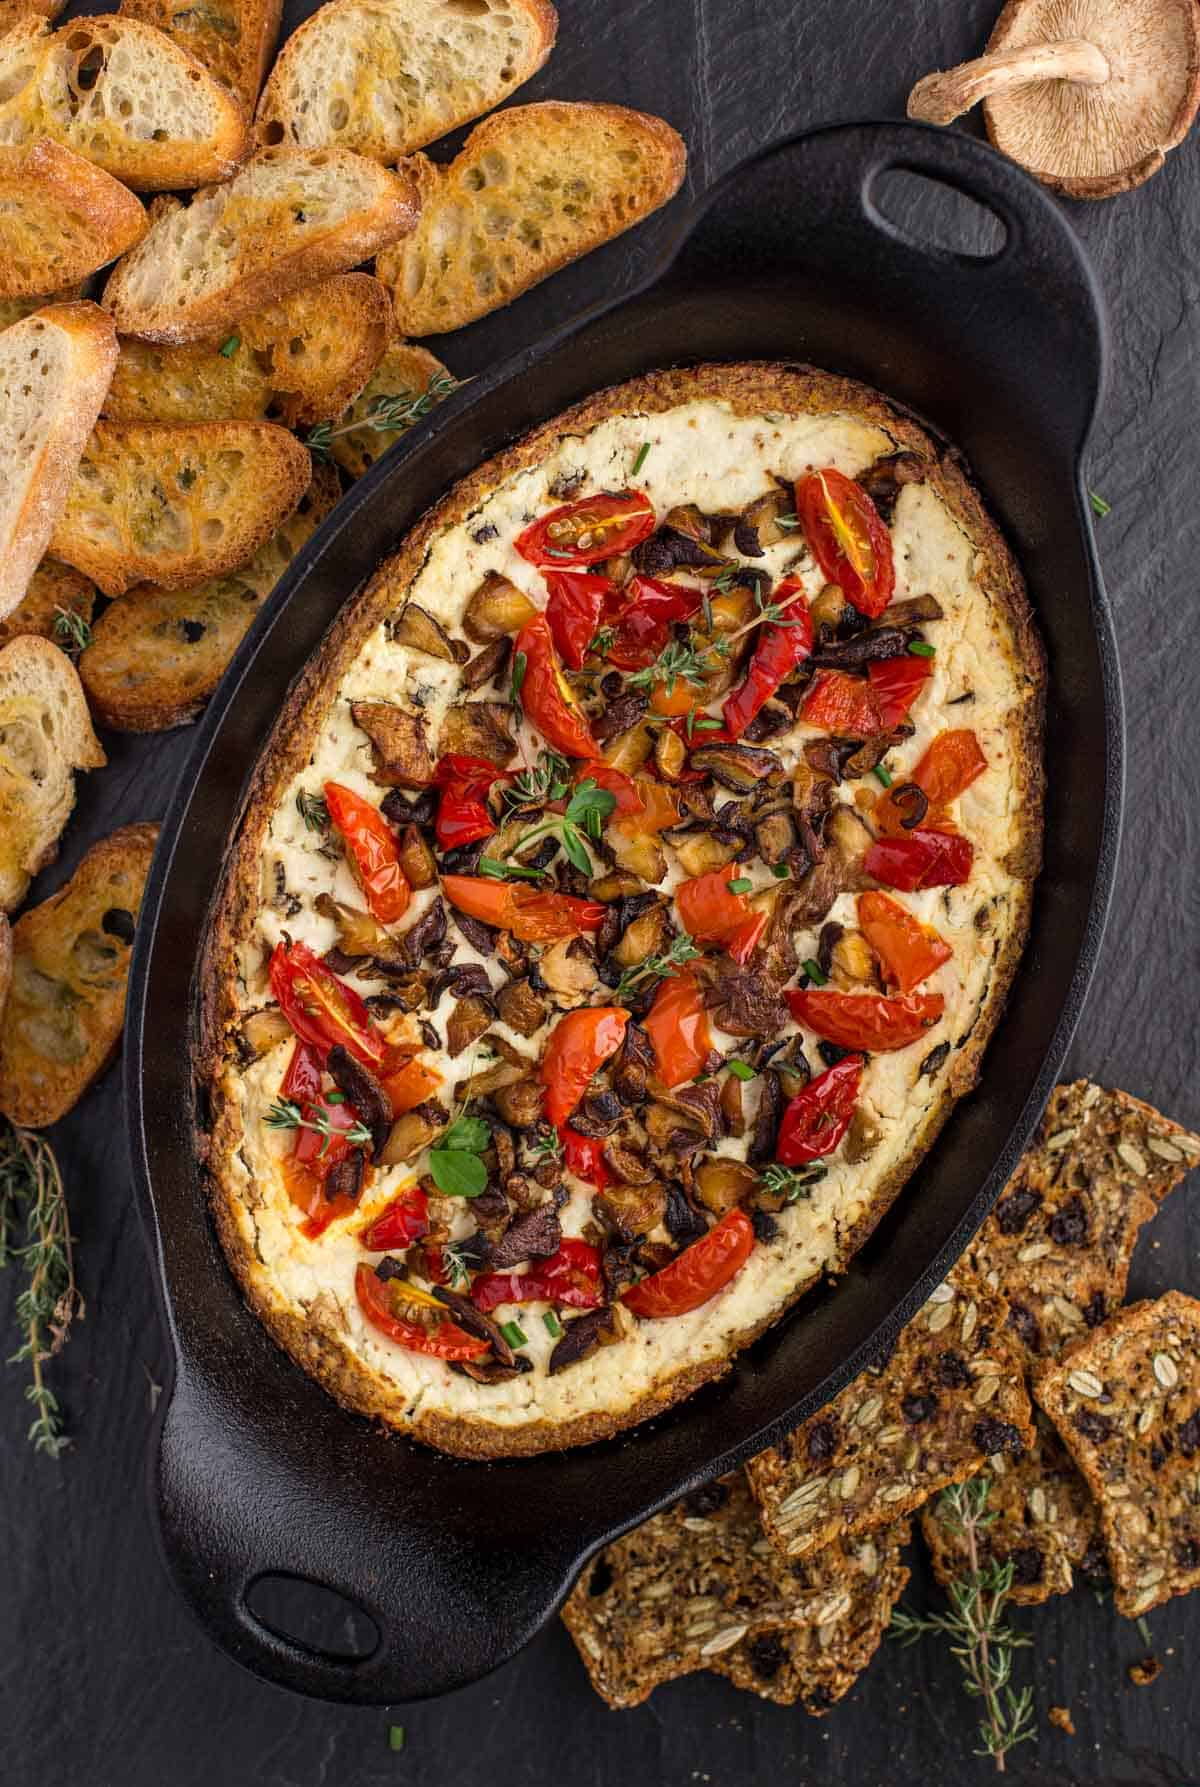 Goat Cheese Dip With Shitake Mushrooms, pickled peppers, and tomatoes in a serving platter with some baguette on the side